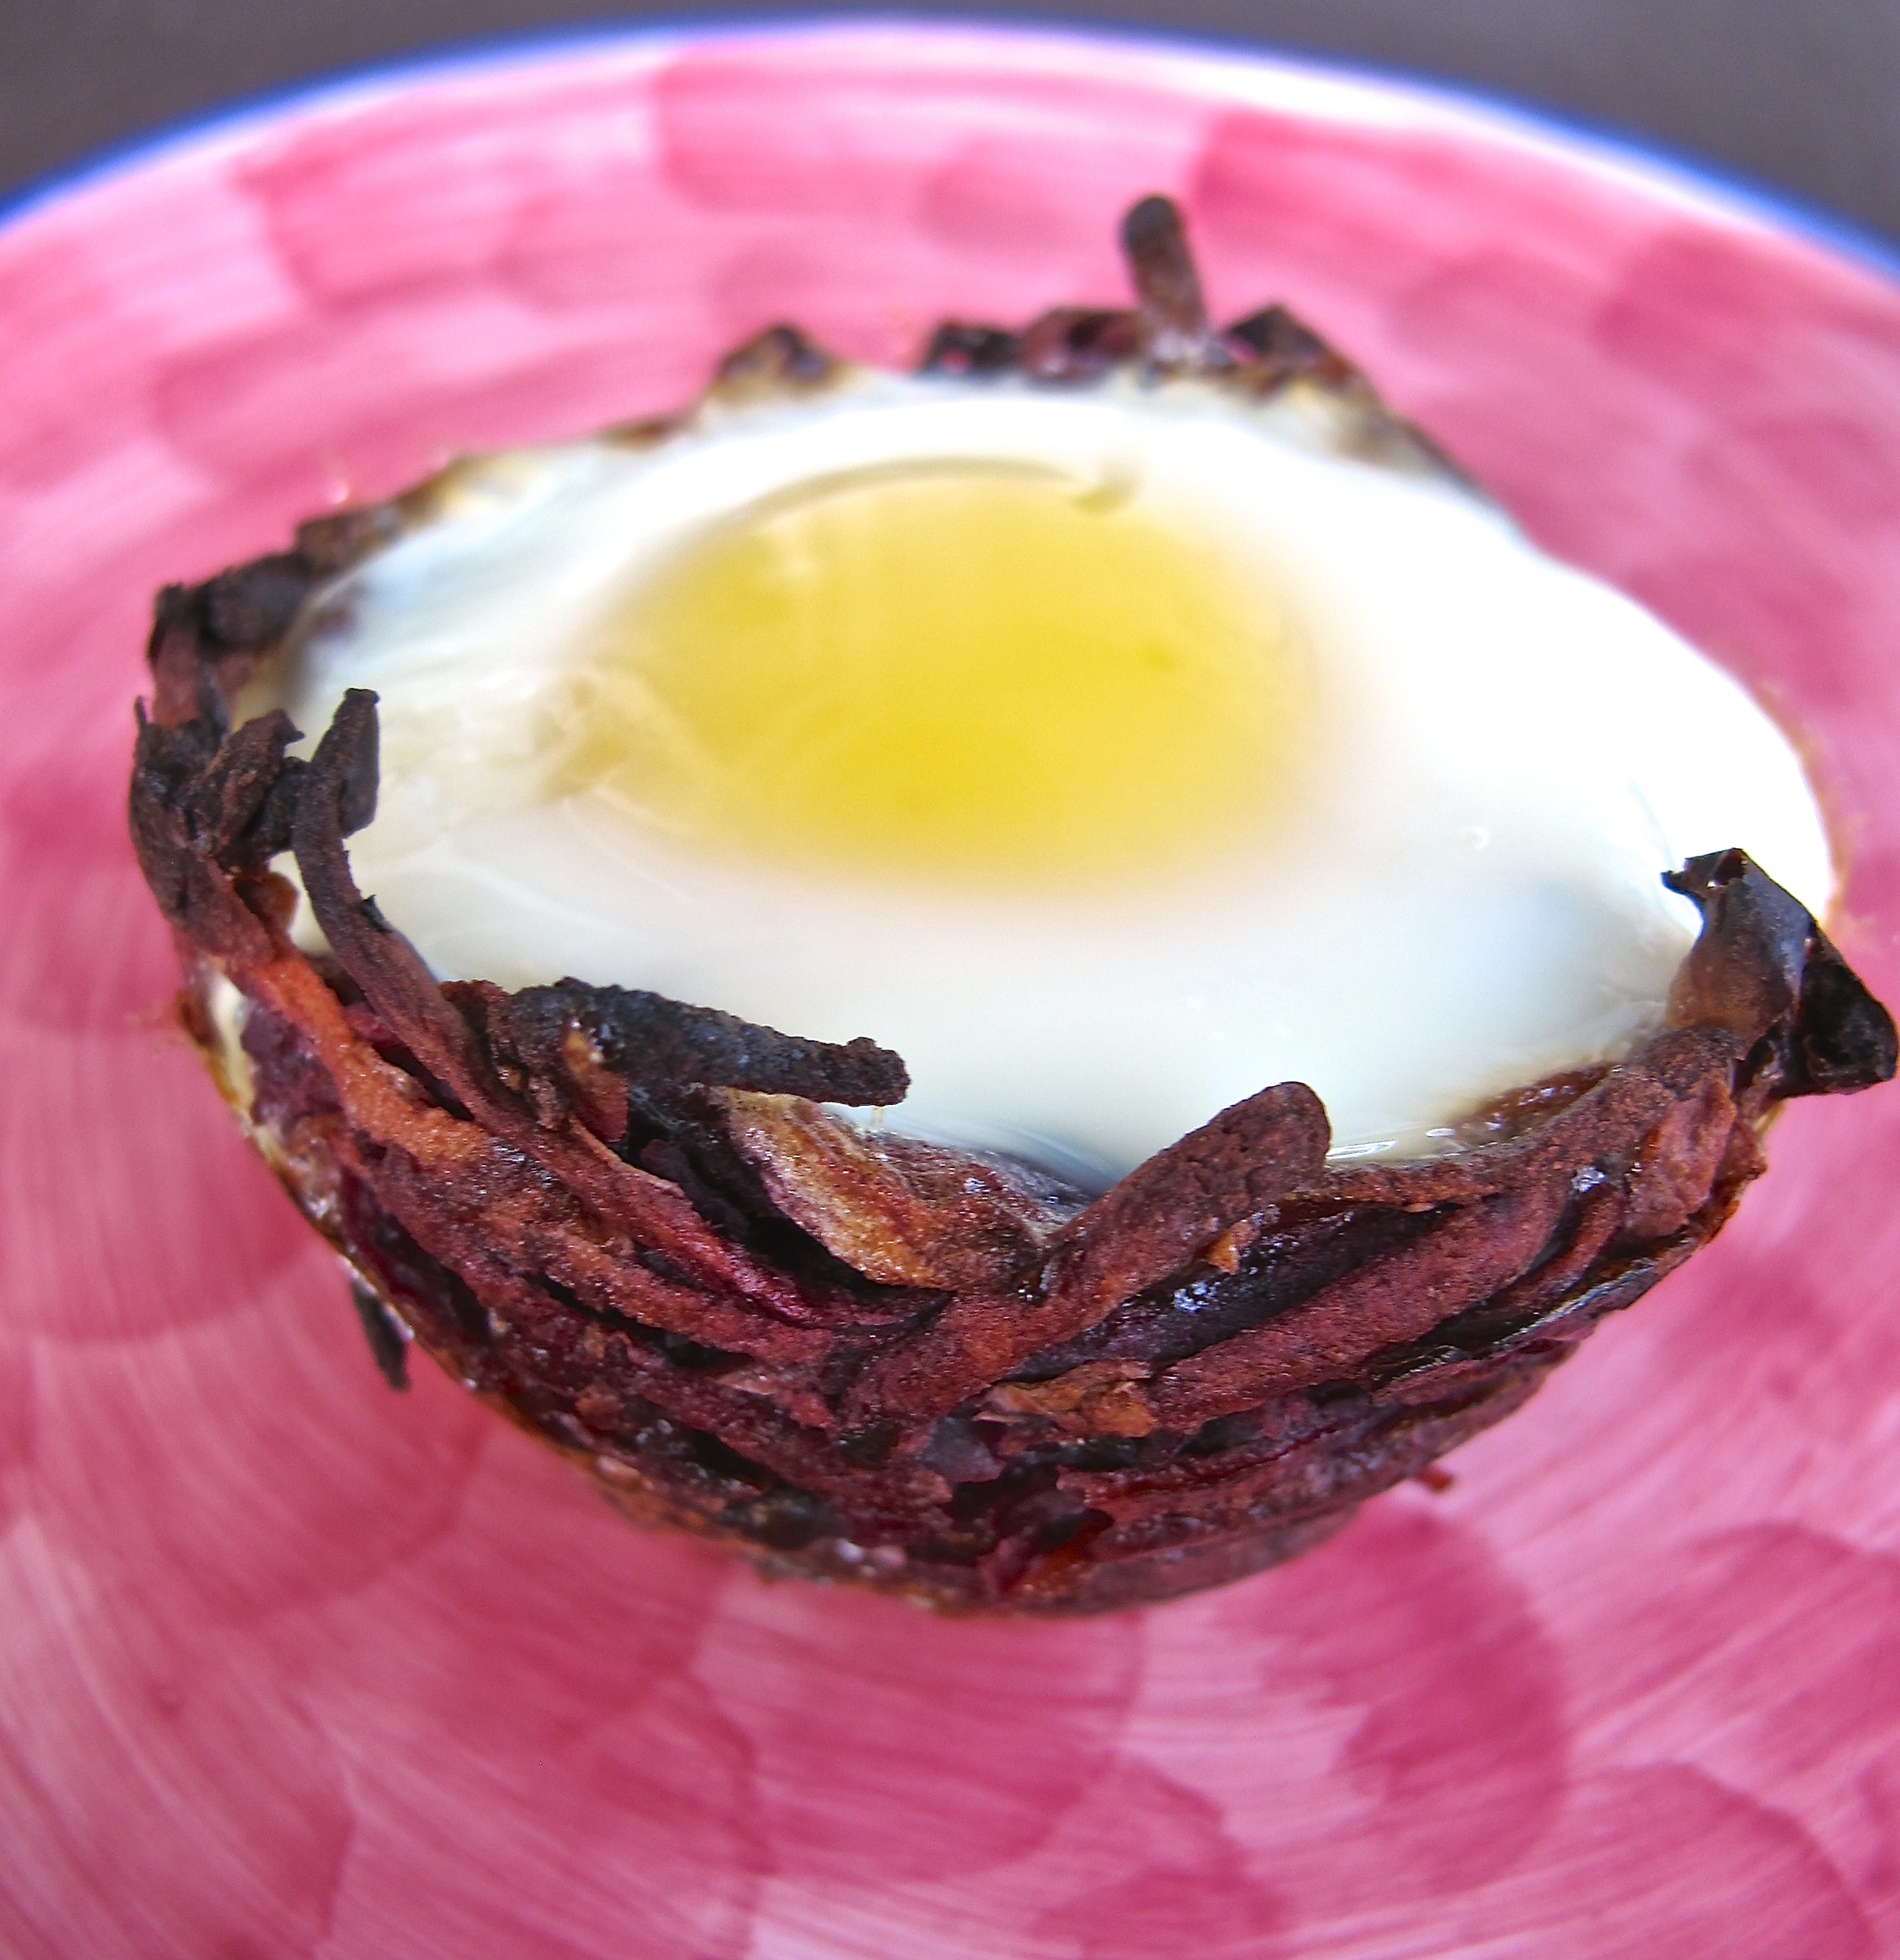 purple sweet potato apple nest with baked egg